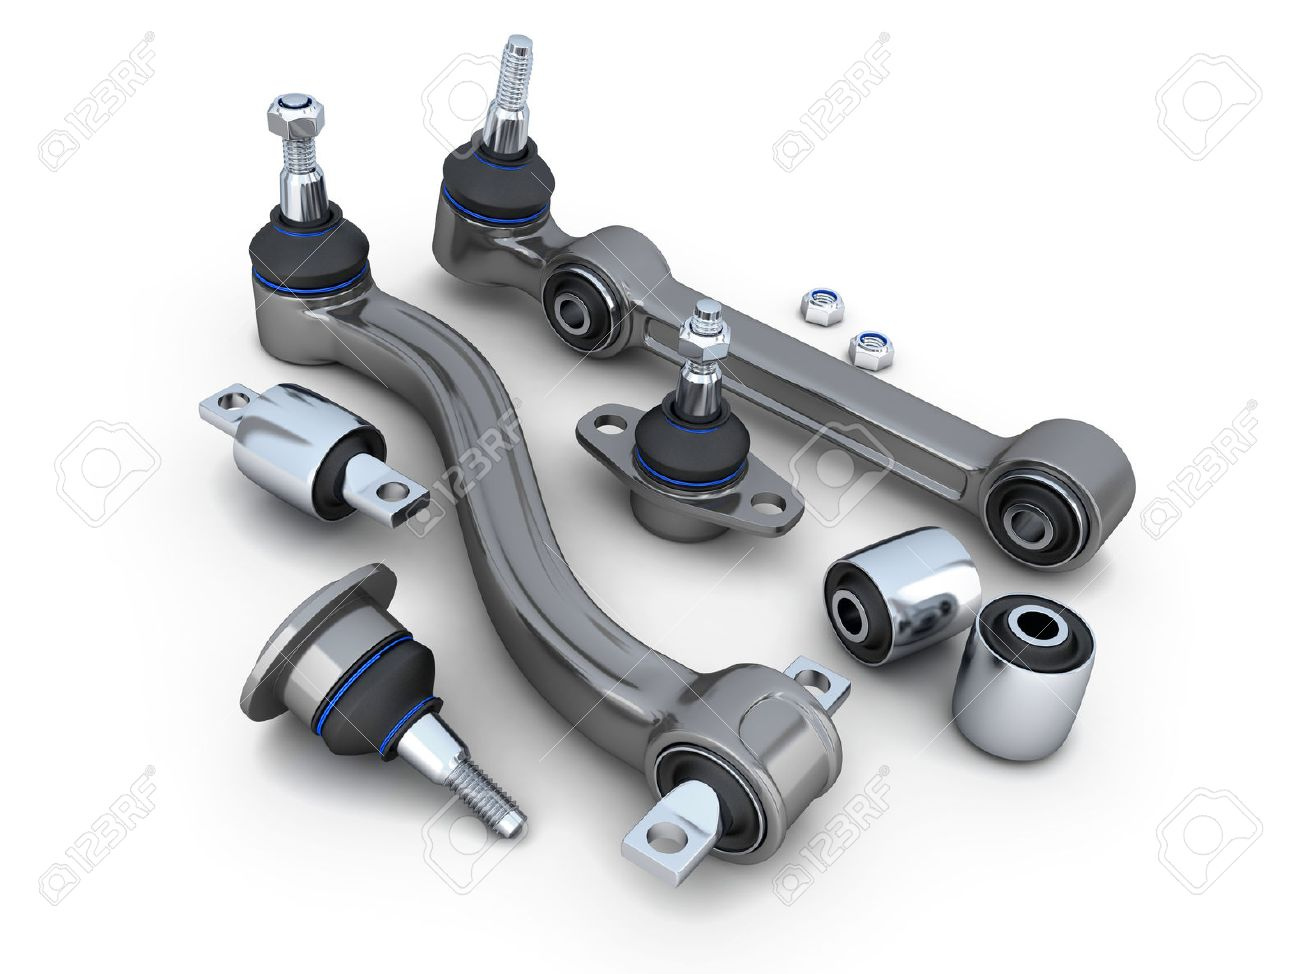 Ball Joint Car >> Suspension Arm And Ball Joint Car Done In 3d